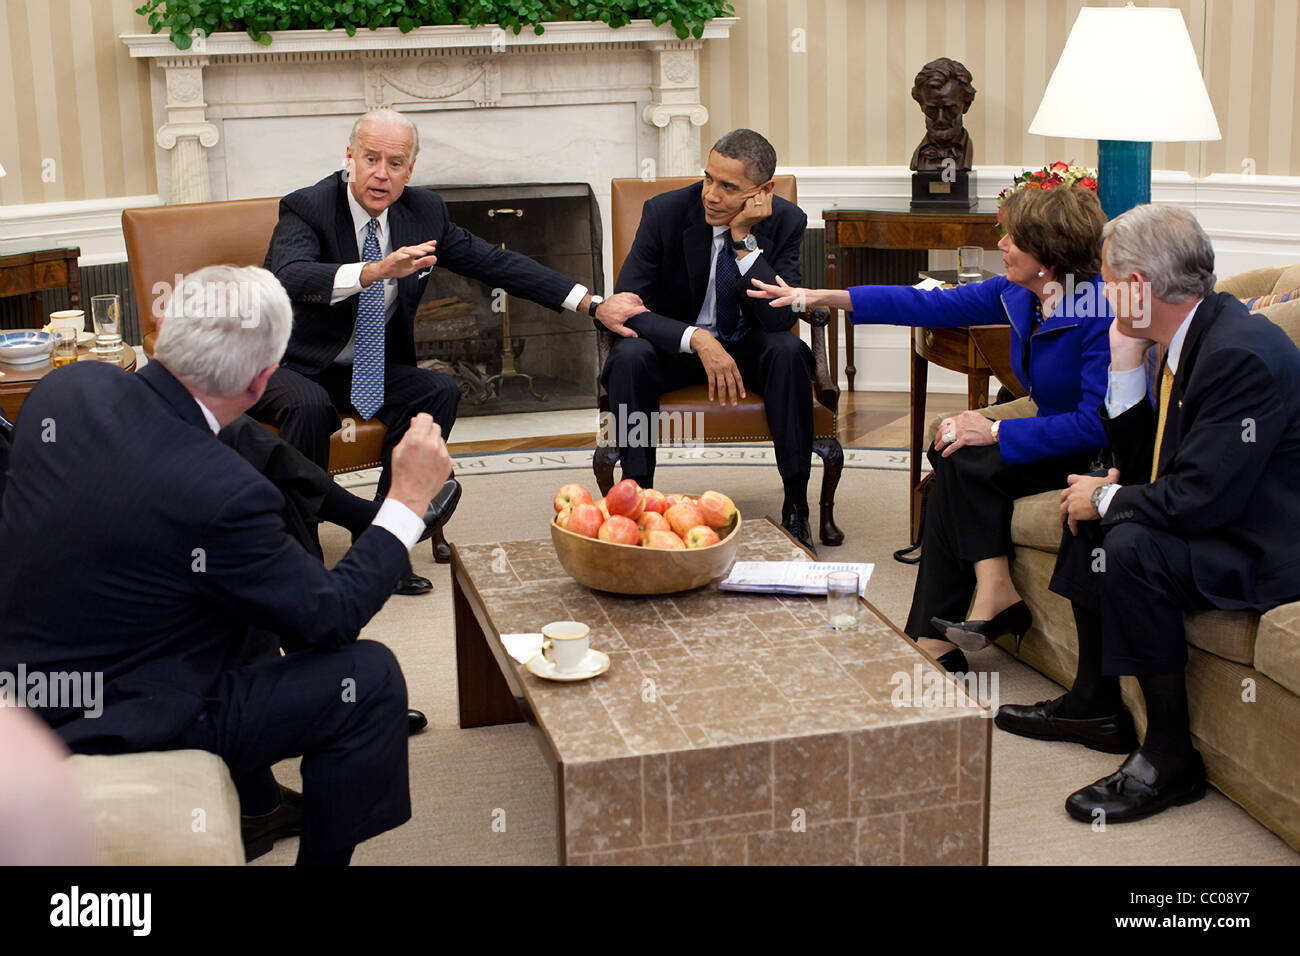 Vice President Joe Biden gestures during a meeting with President Barack Obama and Democratic Congressional leaders - Stock Image